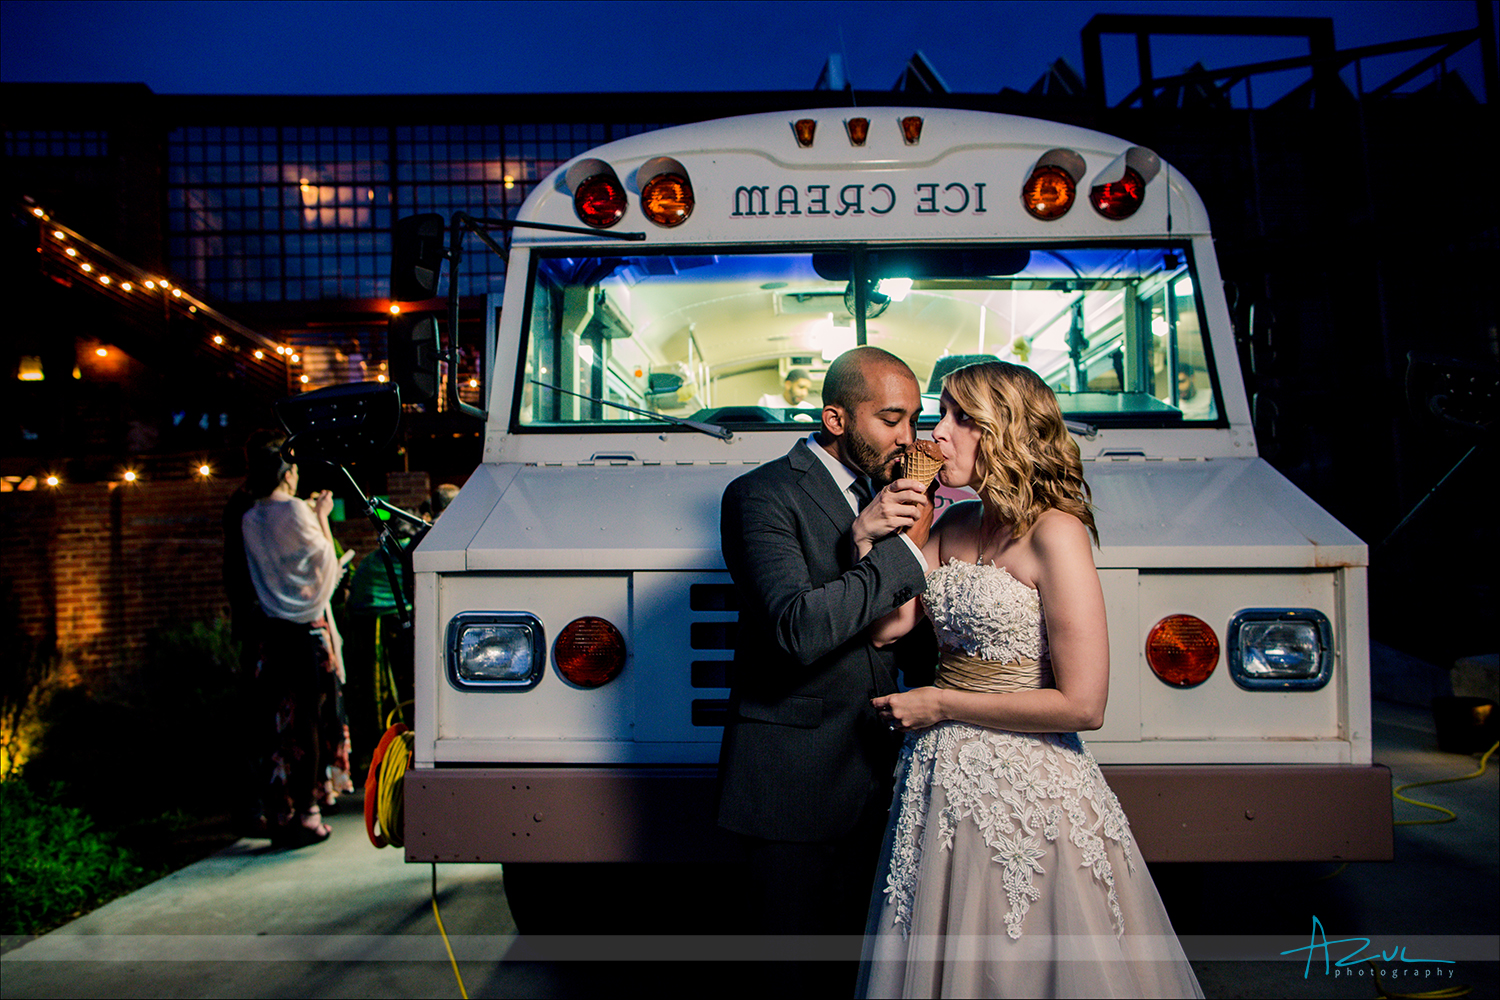 Photographer captures the wedding day couple sharing a toast with ice cream after the ceremony in Raleigh NC